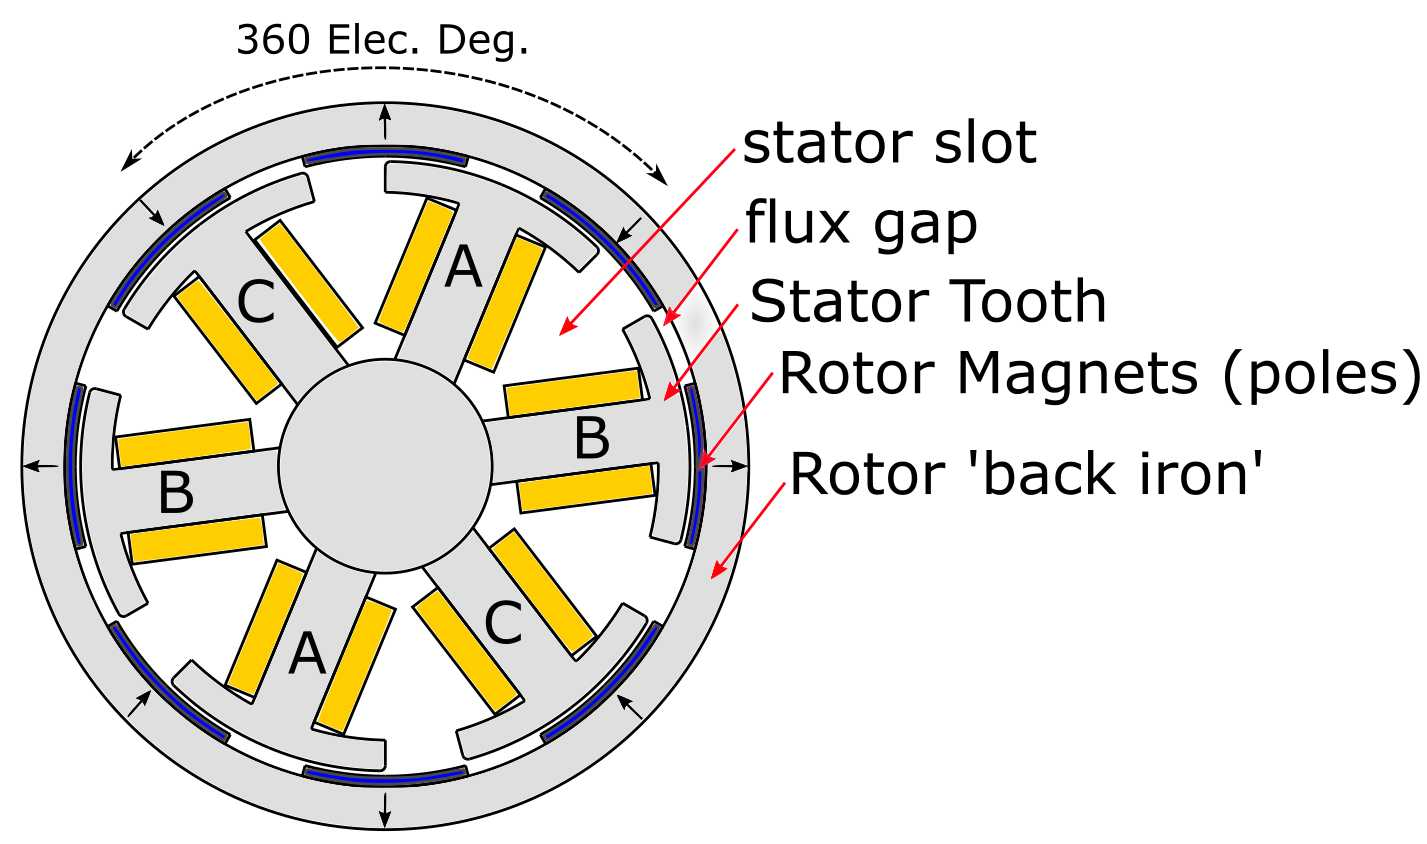 8 pole motor diagram wiring schematic things in motion selecting the best pole and slot combination for  selecting the best pole and slot